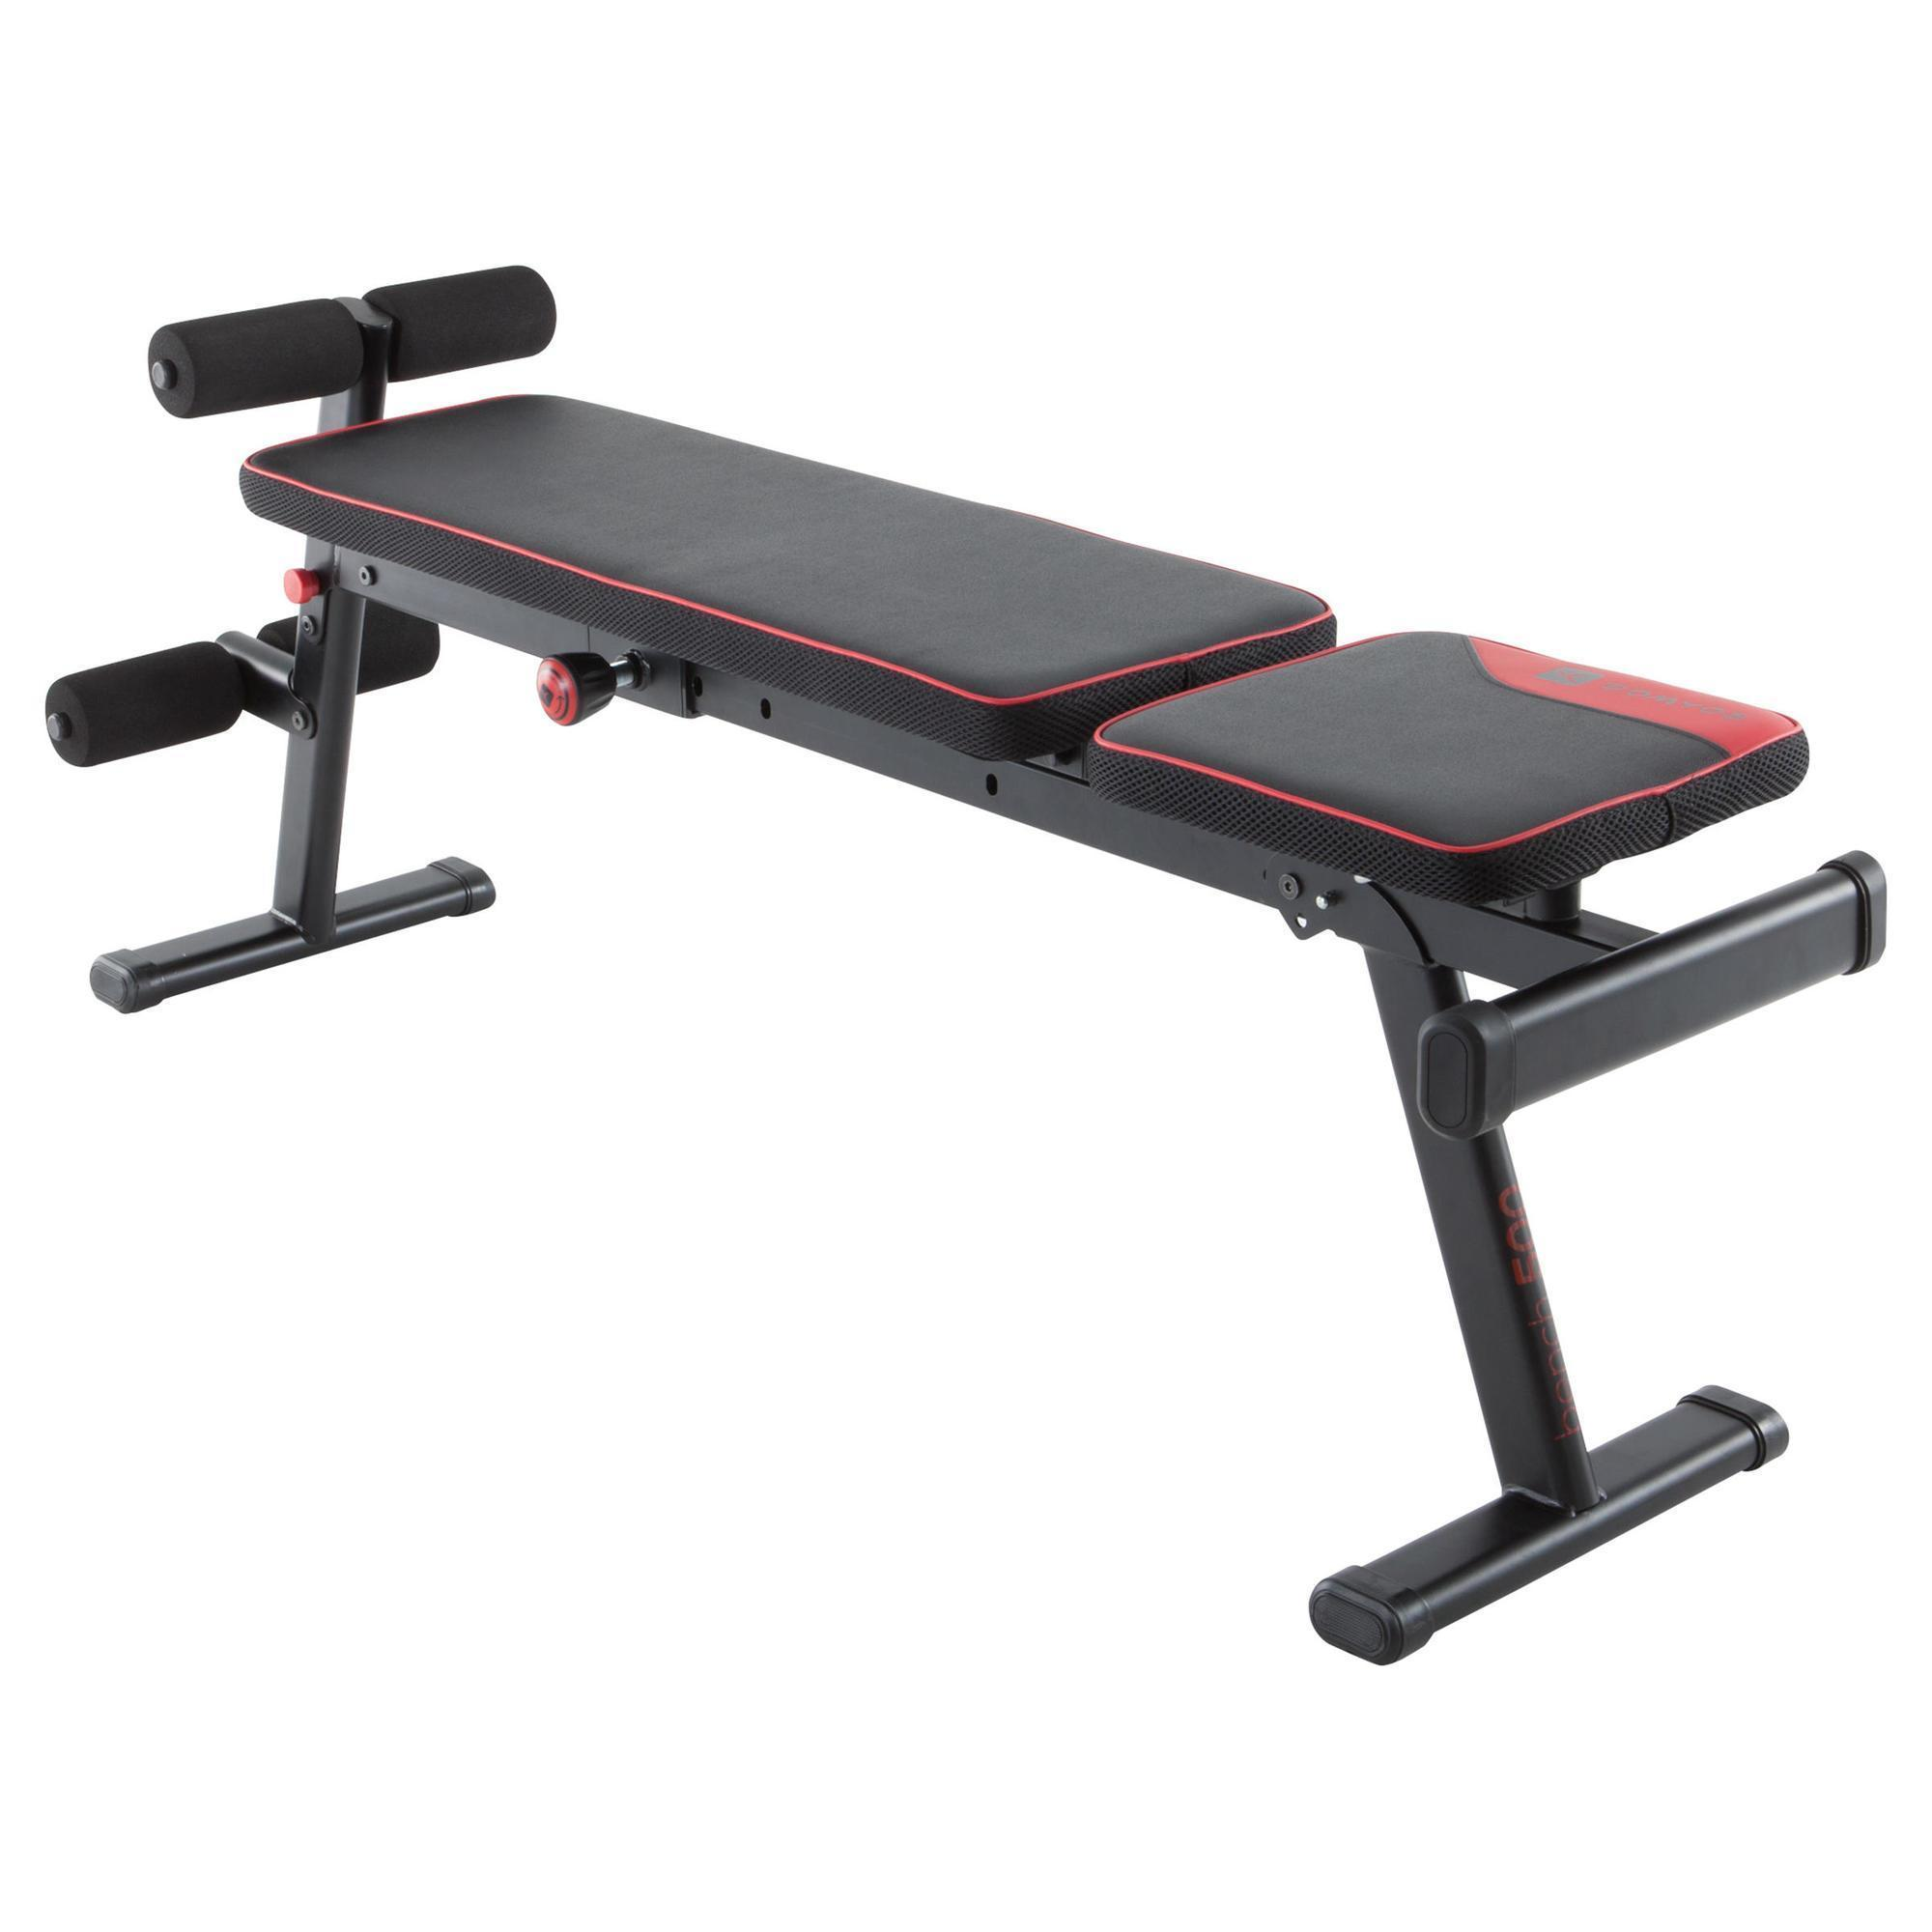 Banc De Musculation 500 Pliable Et Inclinable Domyos By Decathlon